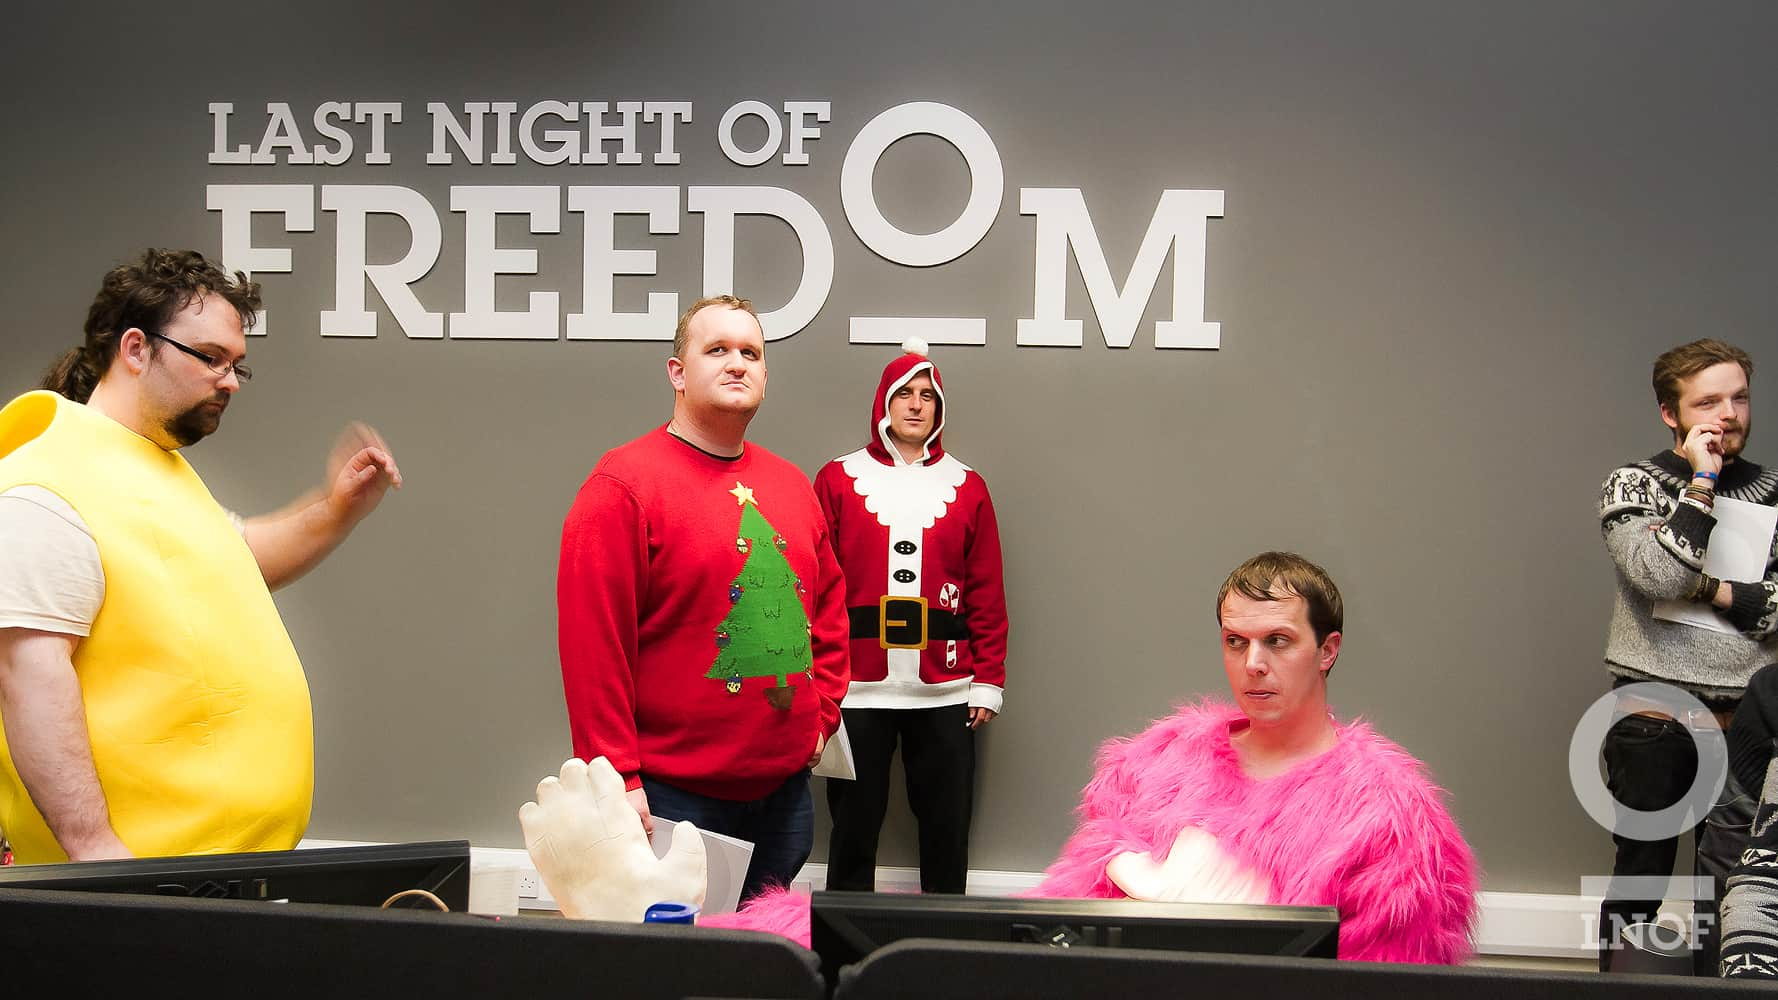 Last Night Of Freedom Login: The 12 Days Of Christmas With LNOF